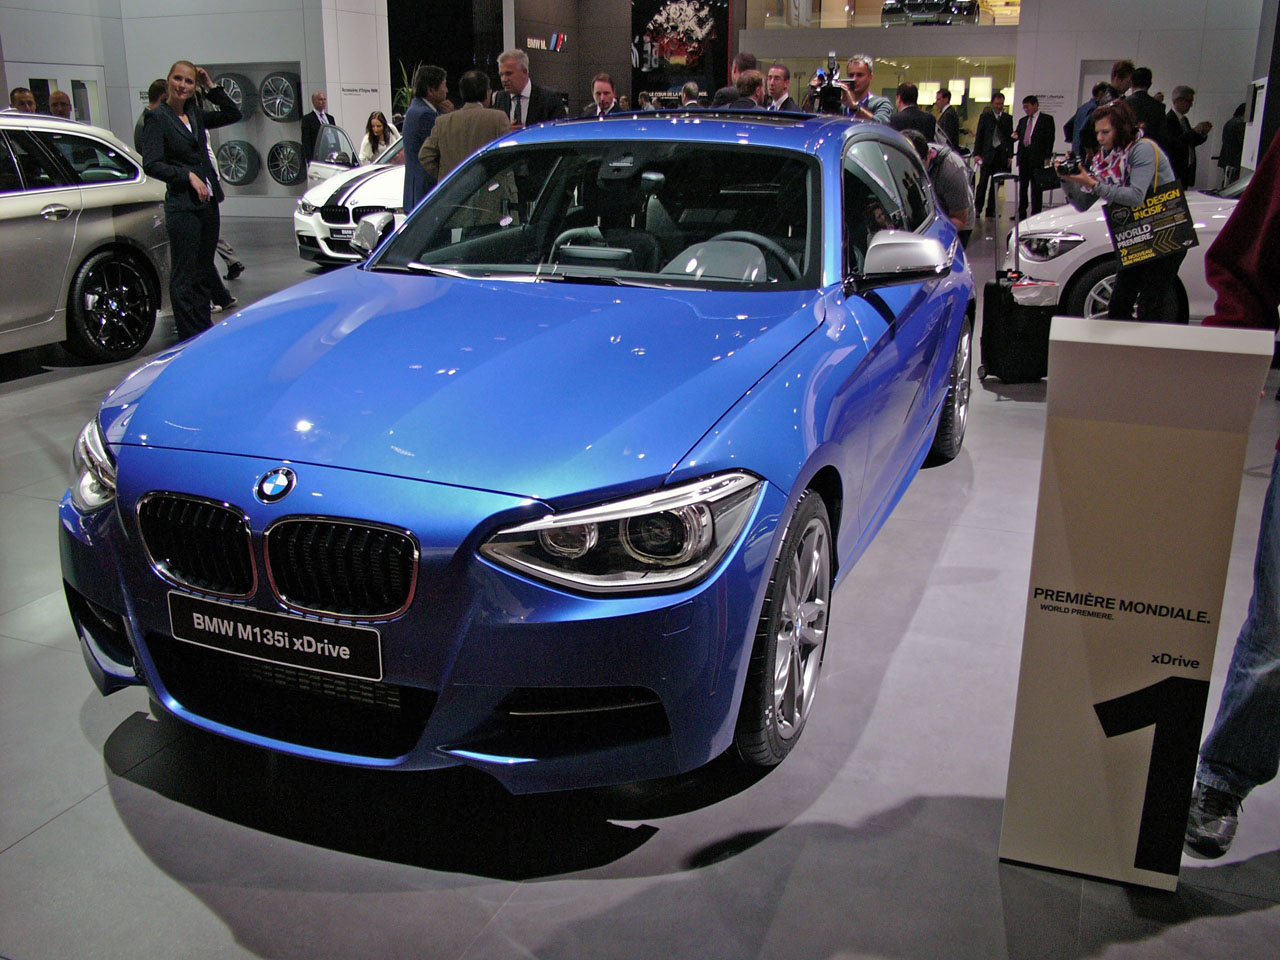 Certified Pre Owned BMW >> 2013 BMW M135i xDrive adds all-wheel drive to performance ...